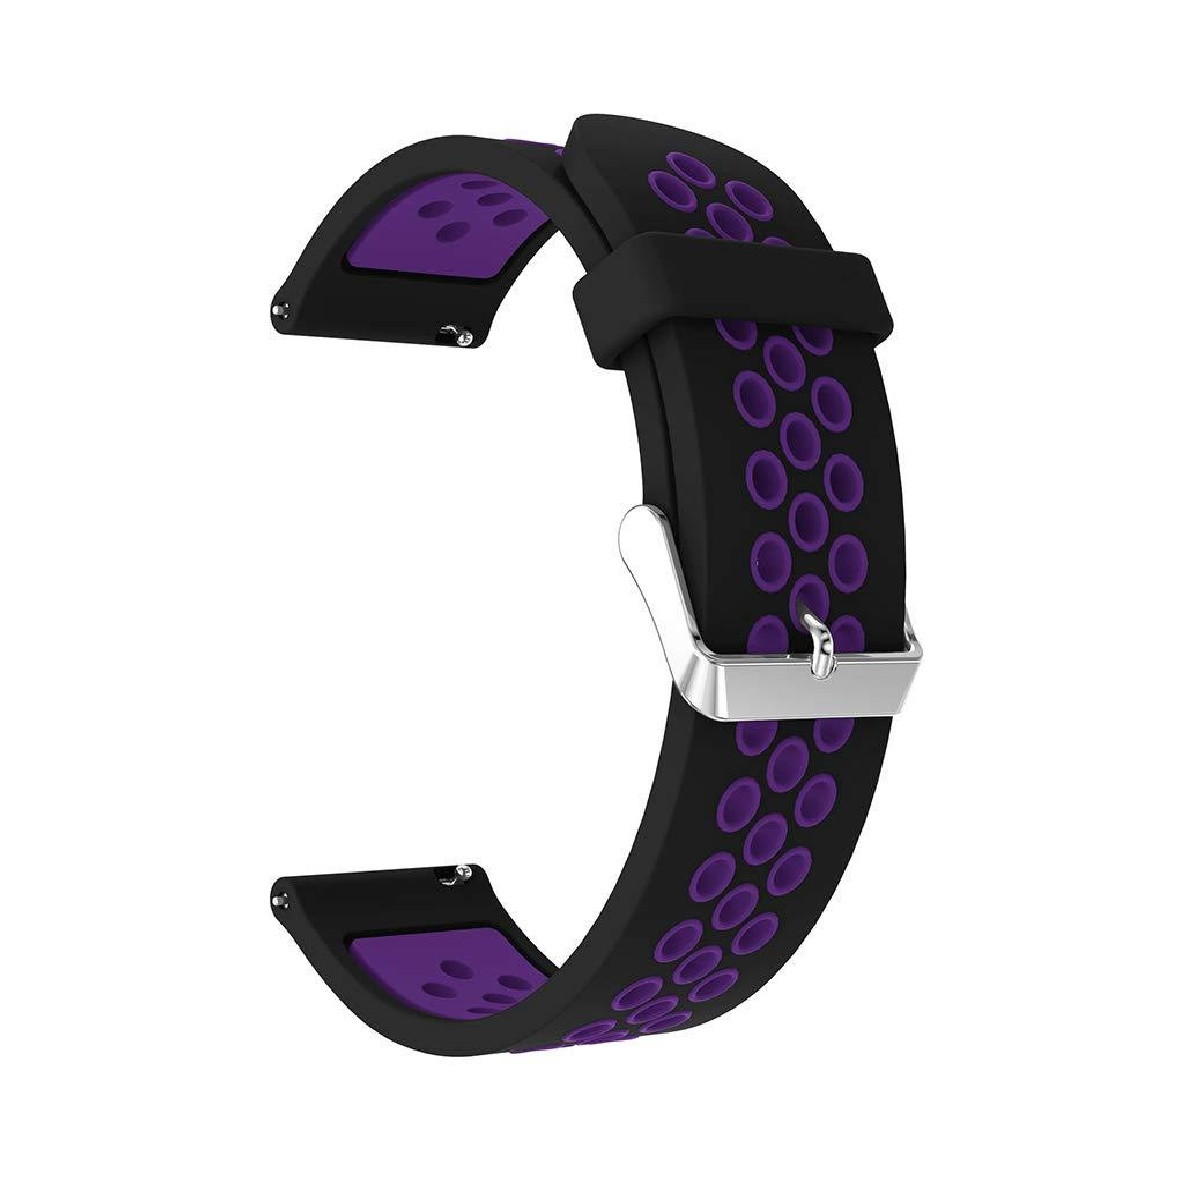 Ремешок Swift для Amazfit Stratos Sport Fitness Black-Purple (0008887)